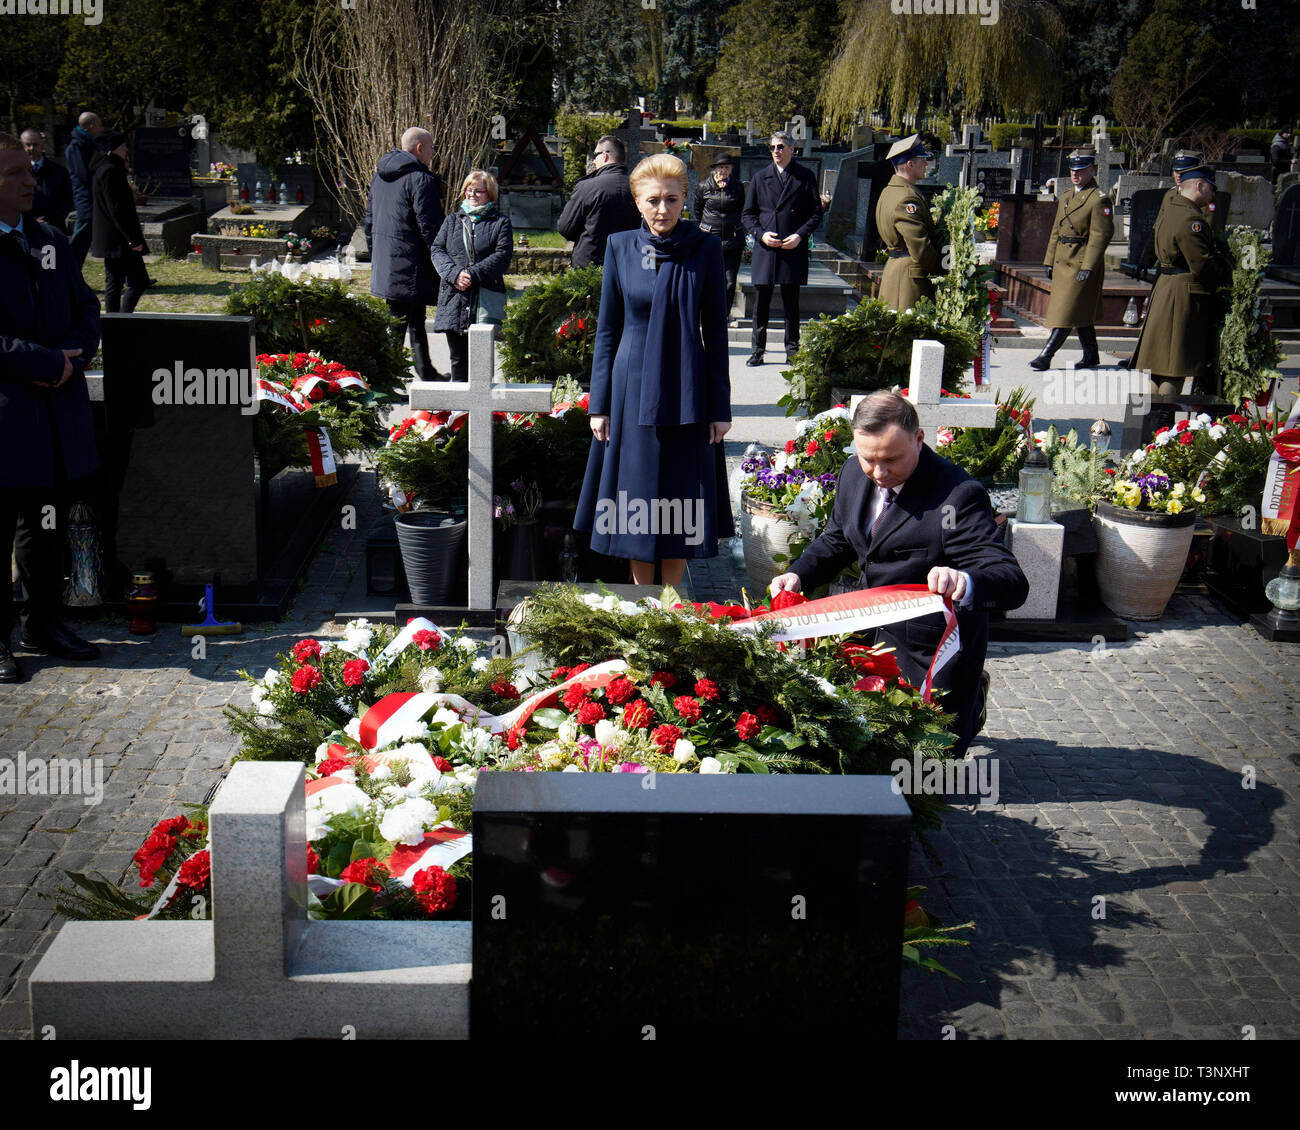 Beijing, Poland. 10th Apr, 2019. Polish President Andrzej Duda and his wife Agata Kornhauser-Duda attend a commemoration ceremony of the ninth anniversary of the Smolensk plane crash, which killed 96 people, including former Polish President Lech Kaczynski, in Warsaw, Poland, on April 10, 2019. Credit: Jaap Arriens/Xinhua/Alamy Live News - Stock Image